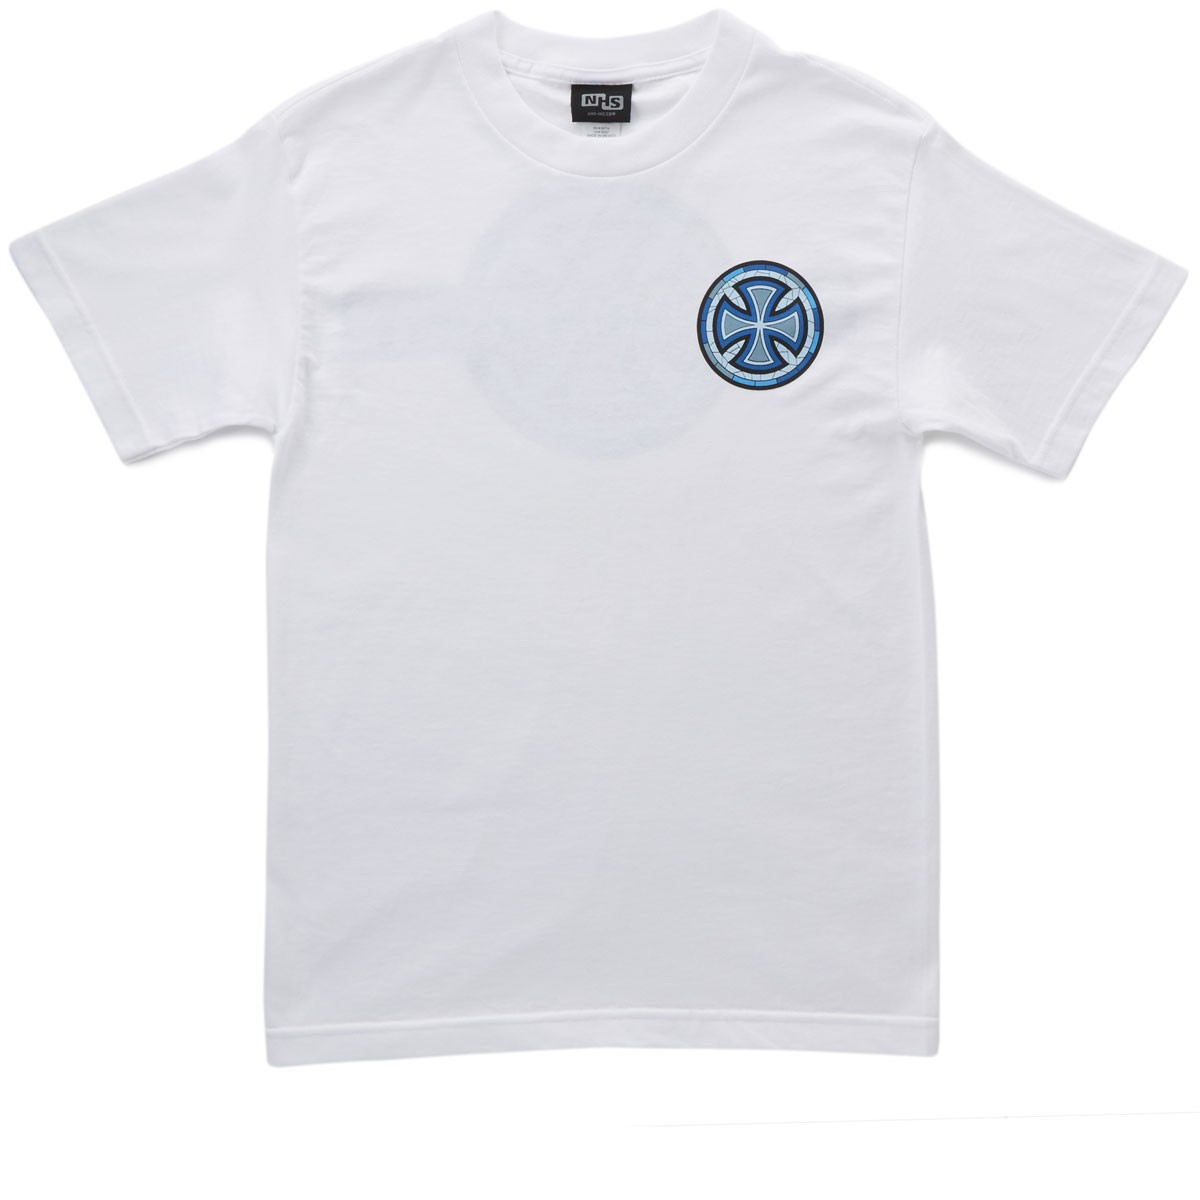 Independent Church T-Shirt - White